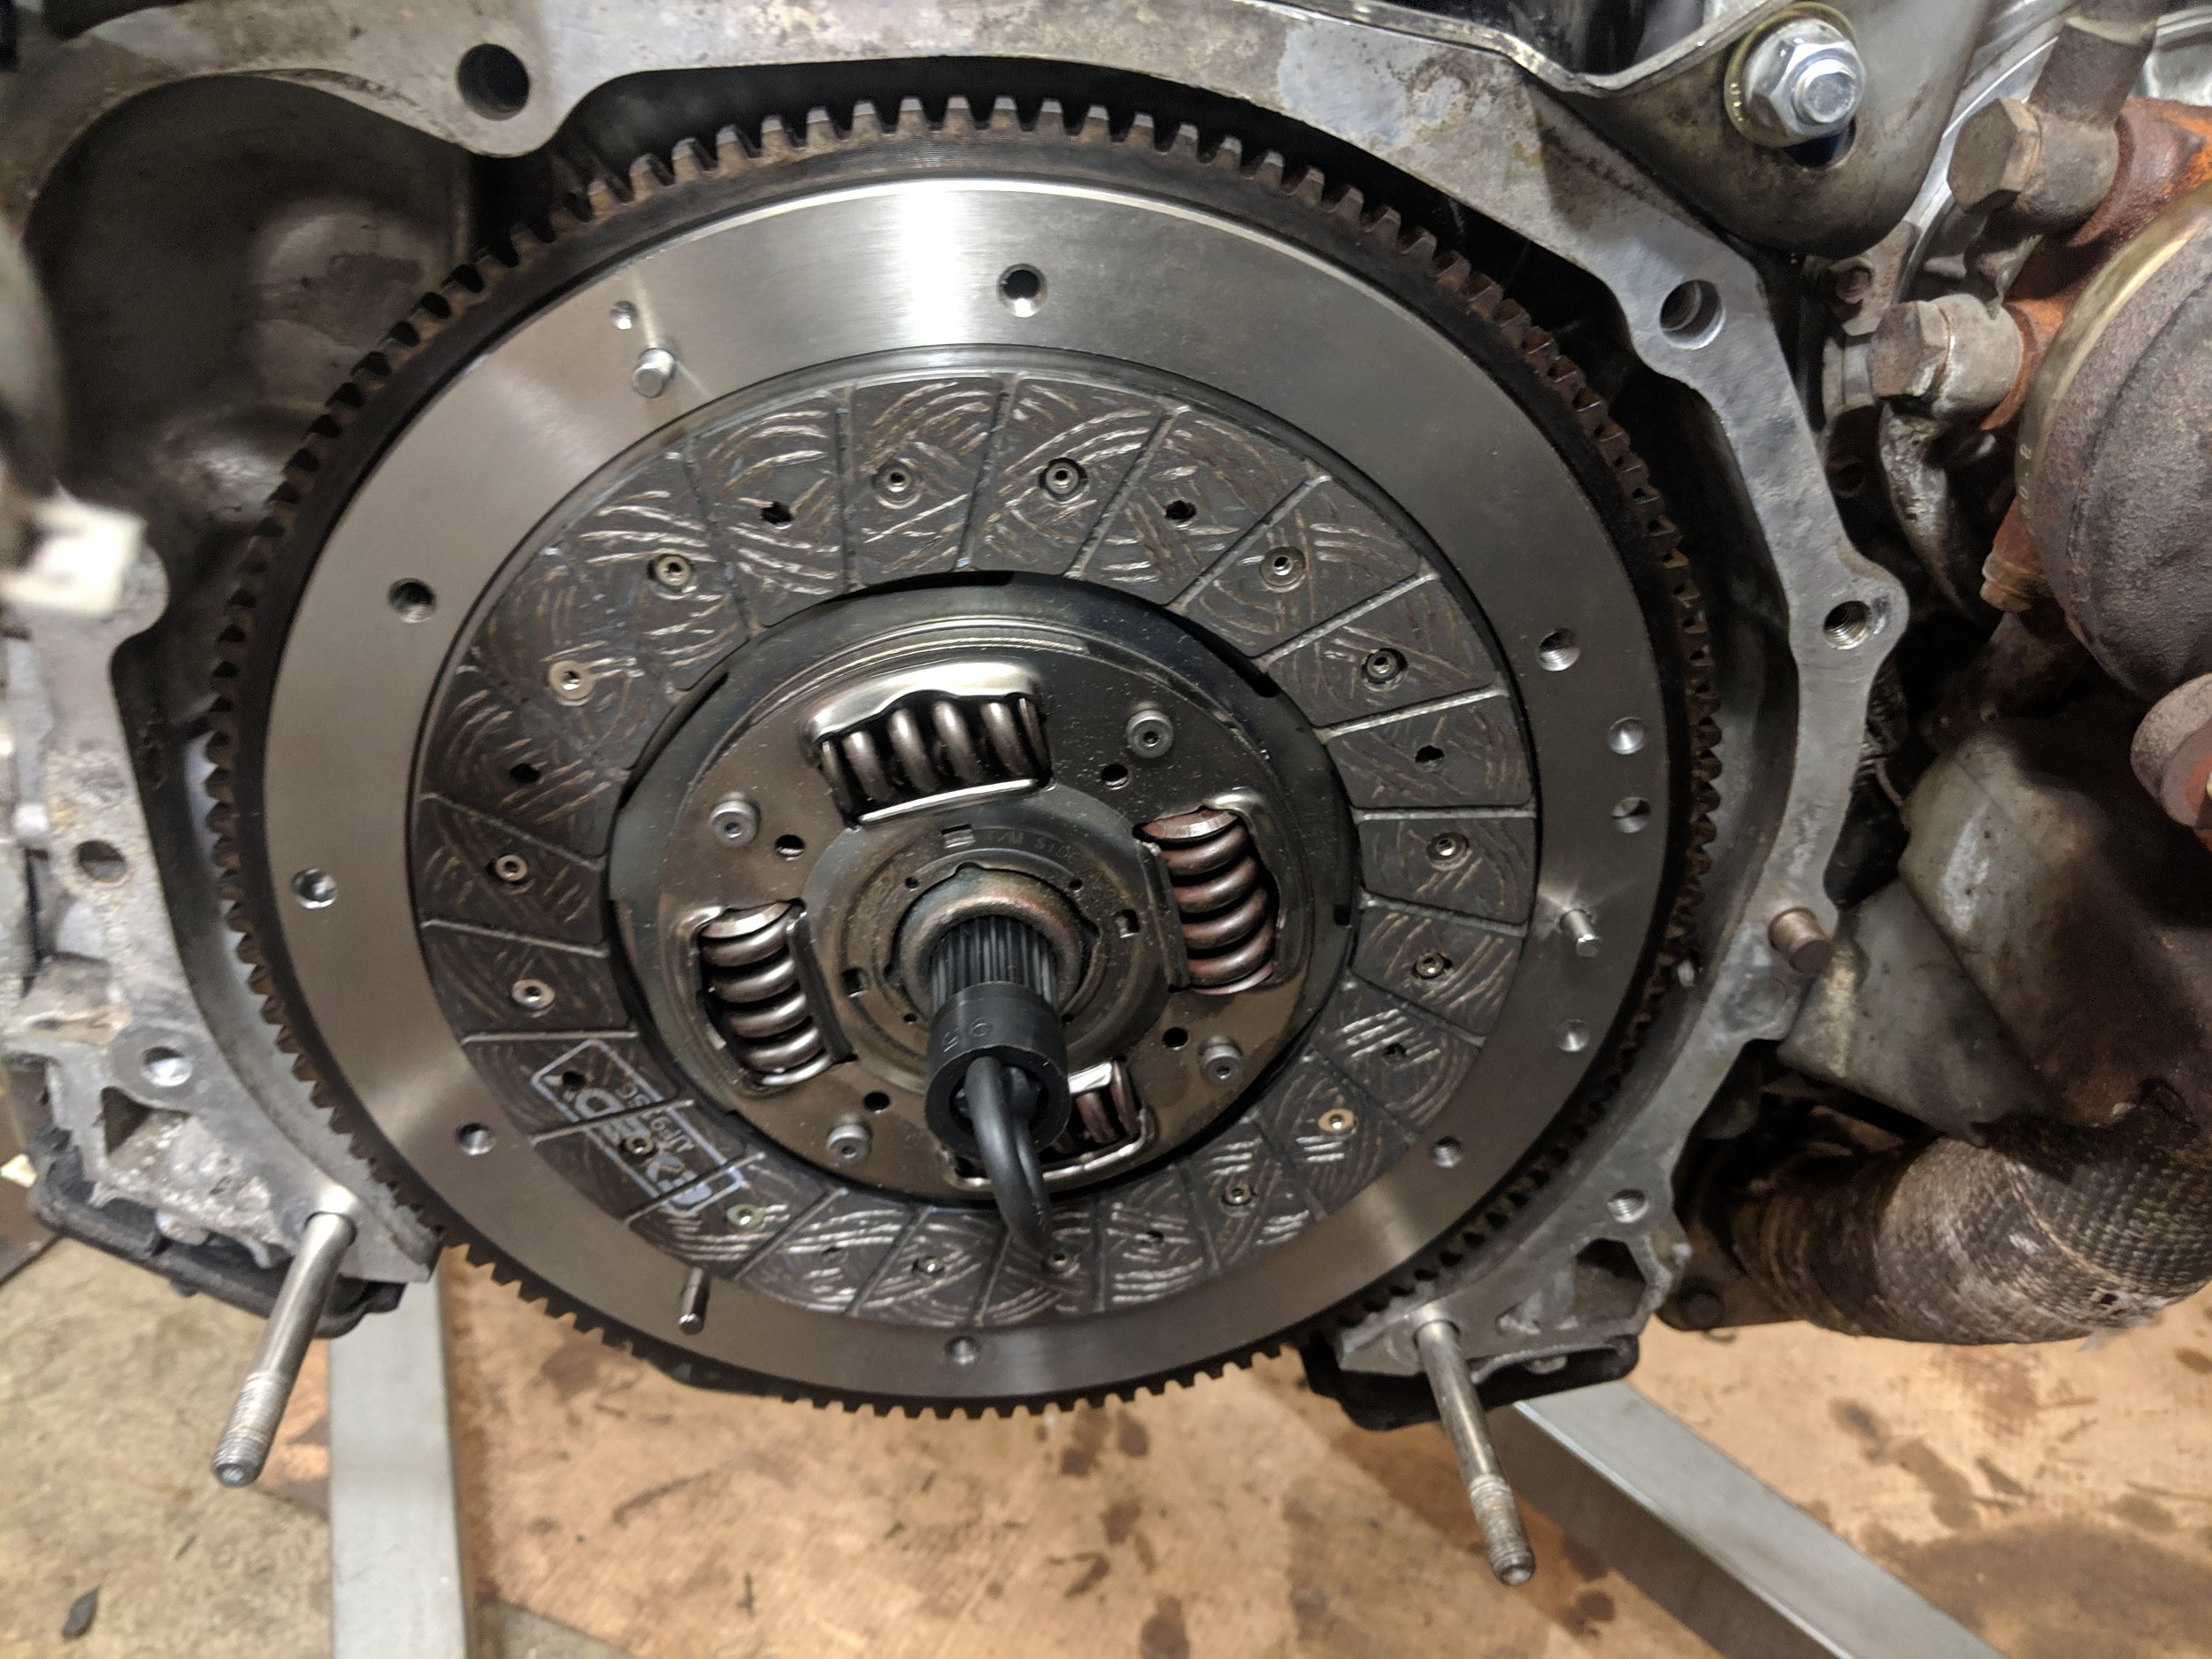 Clutch disc installed and ready for the pressure plate.